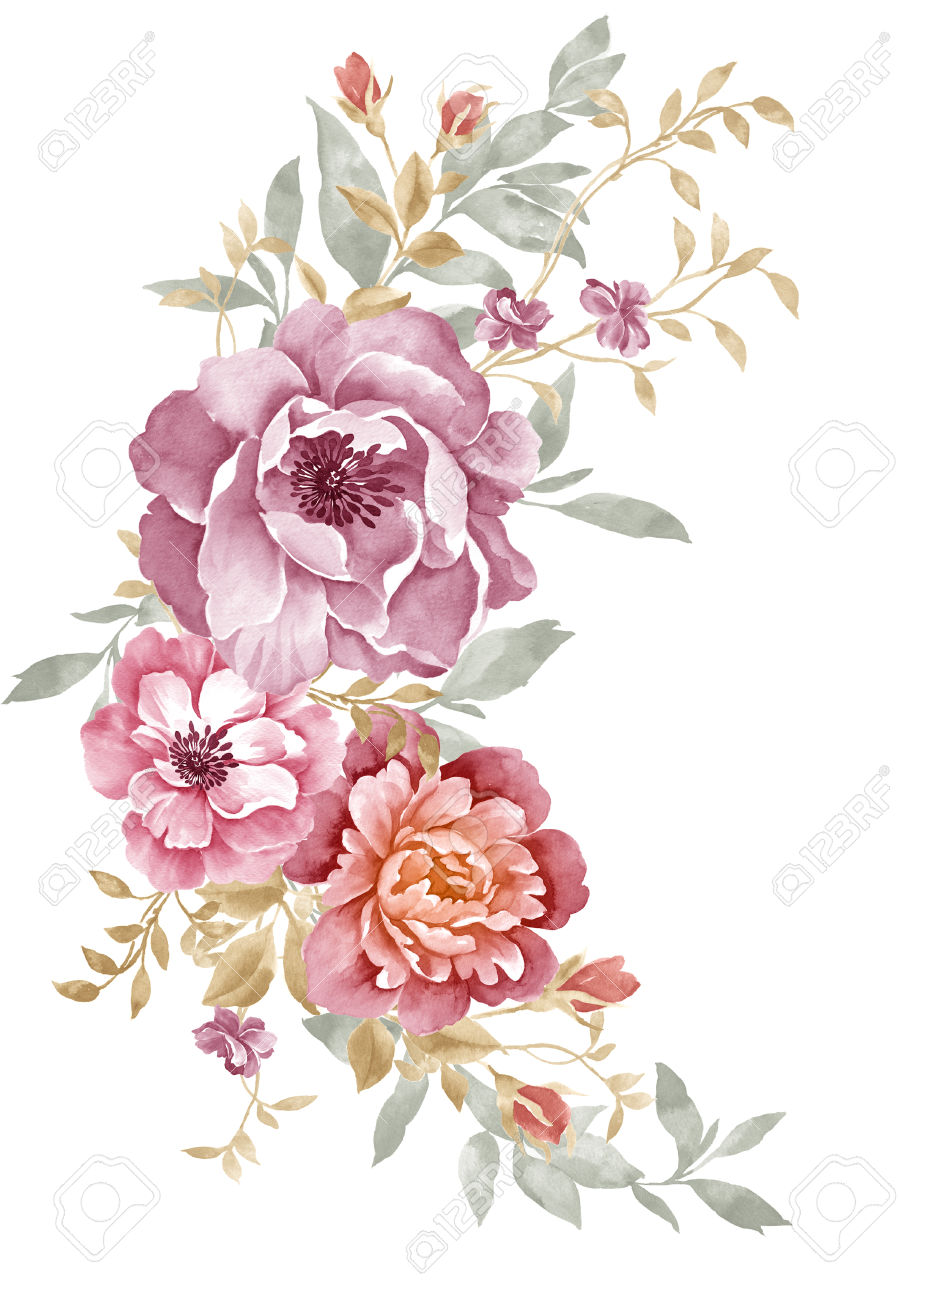 Drawn peony simple Flowers Simple Illustration hand Google